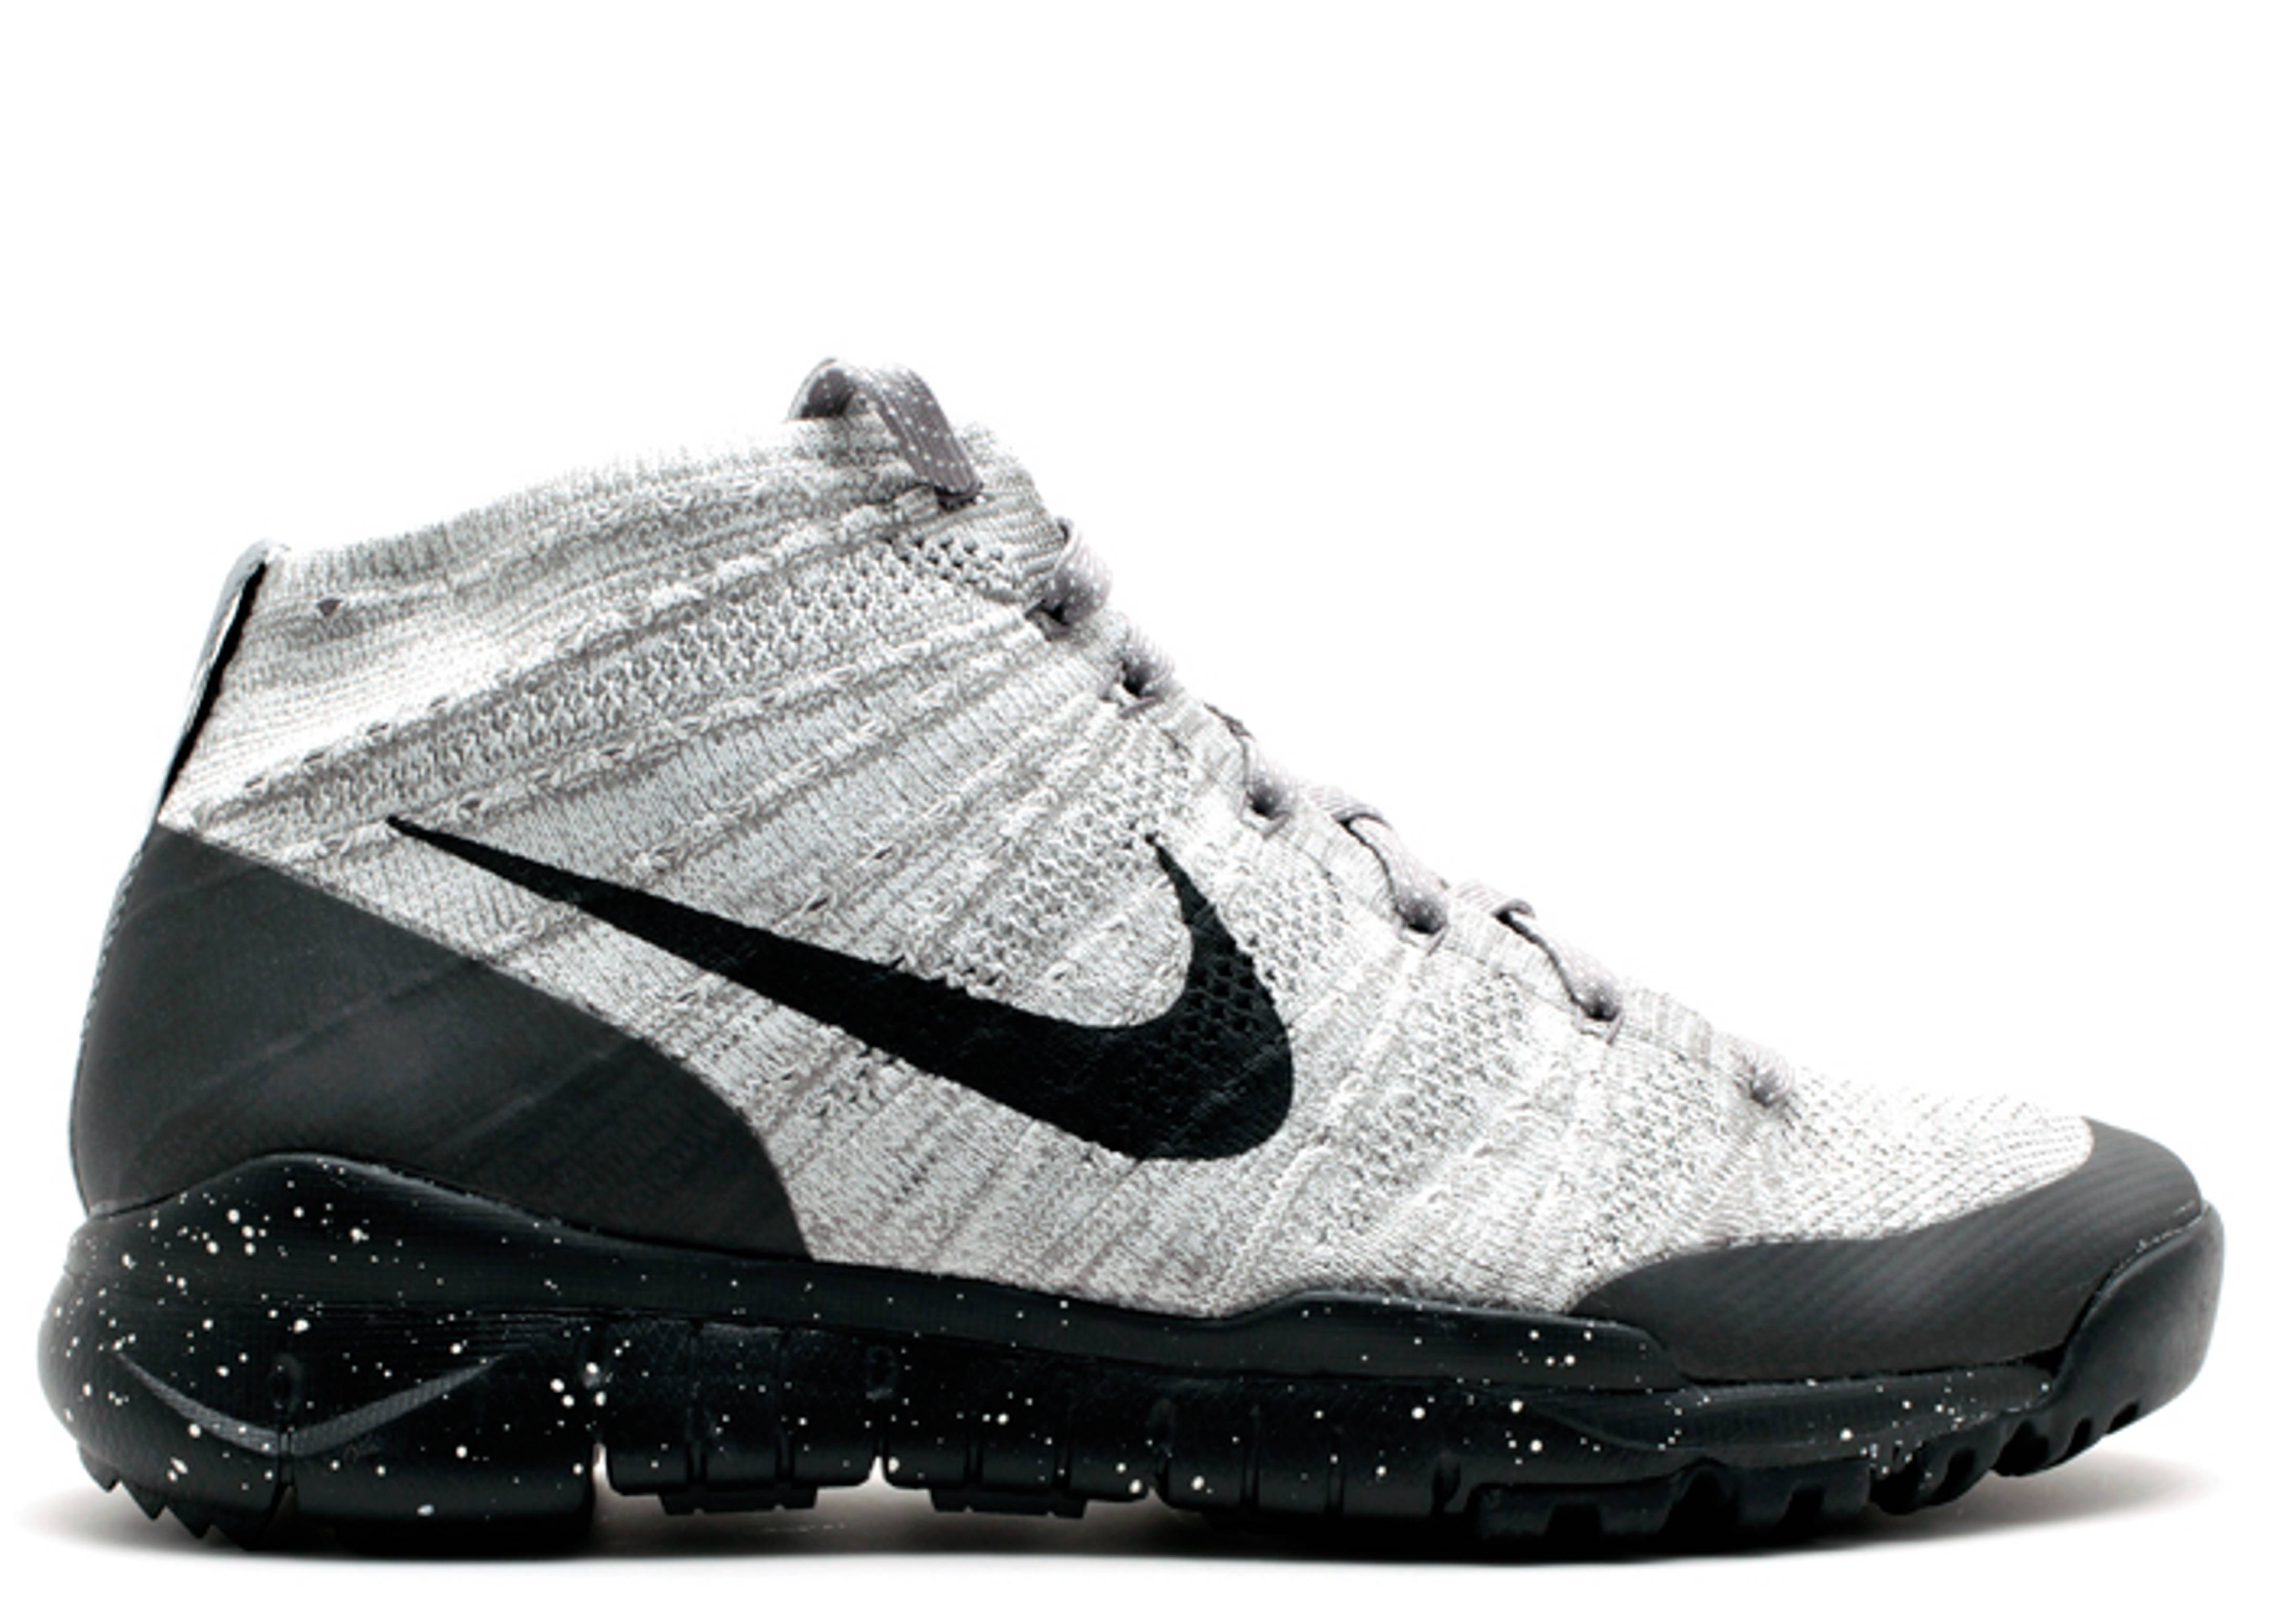 premium selection 503d3 acd98 nike. flyknit trainer chukka fsb